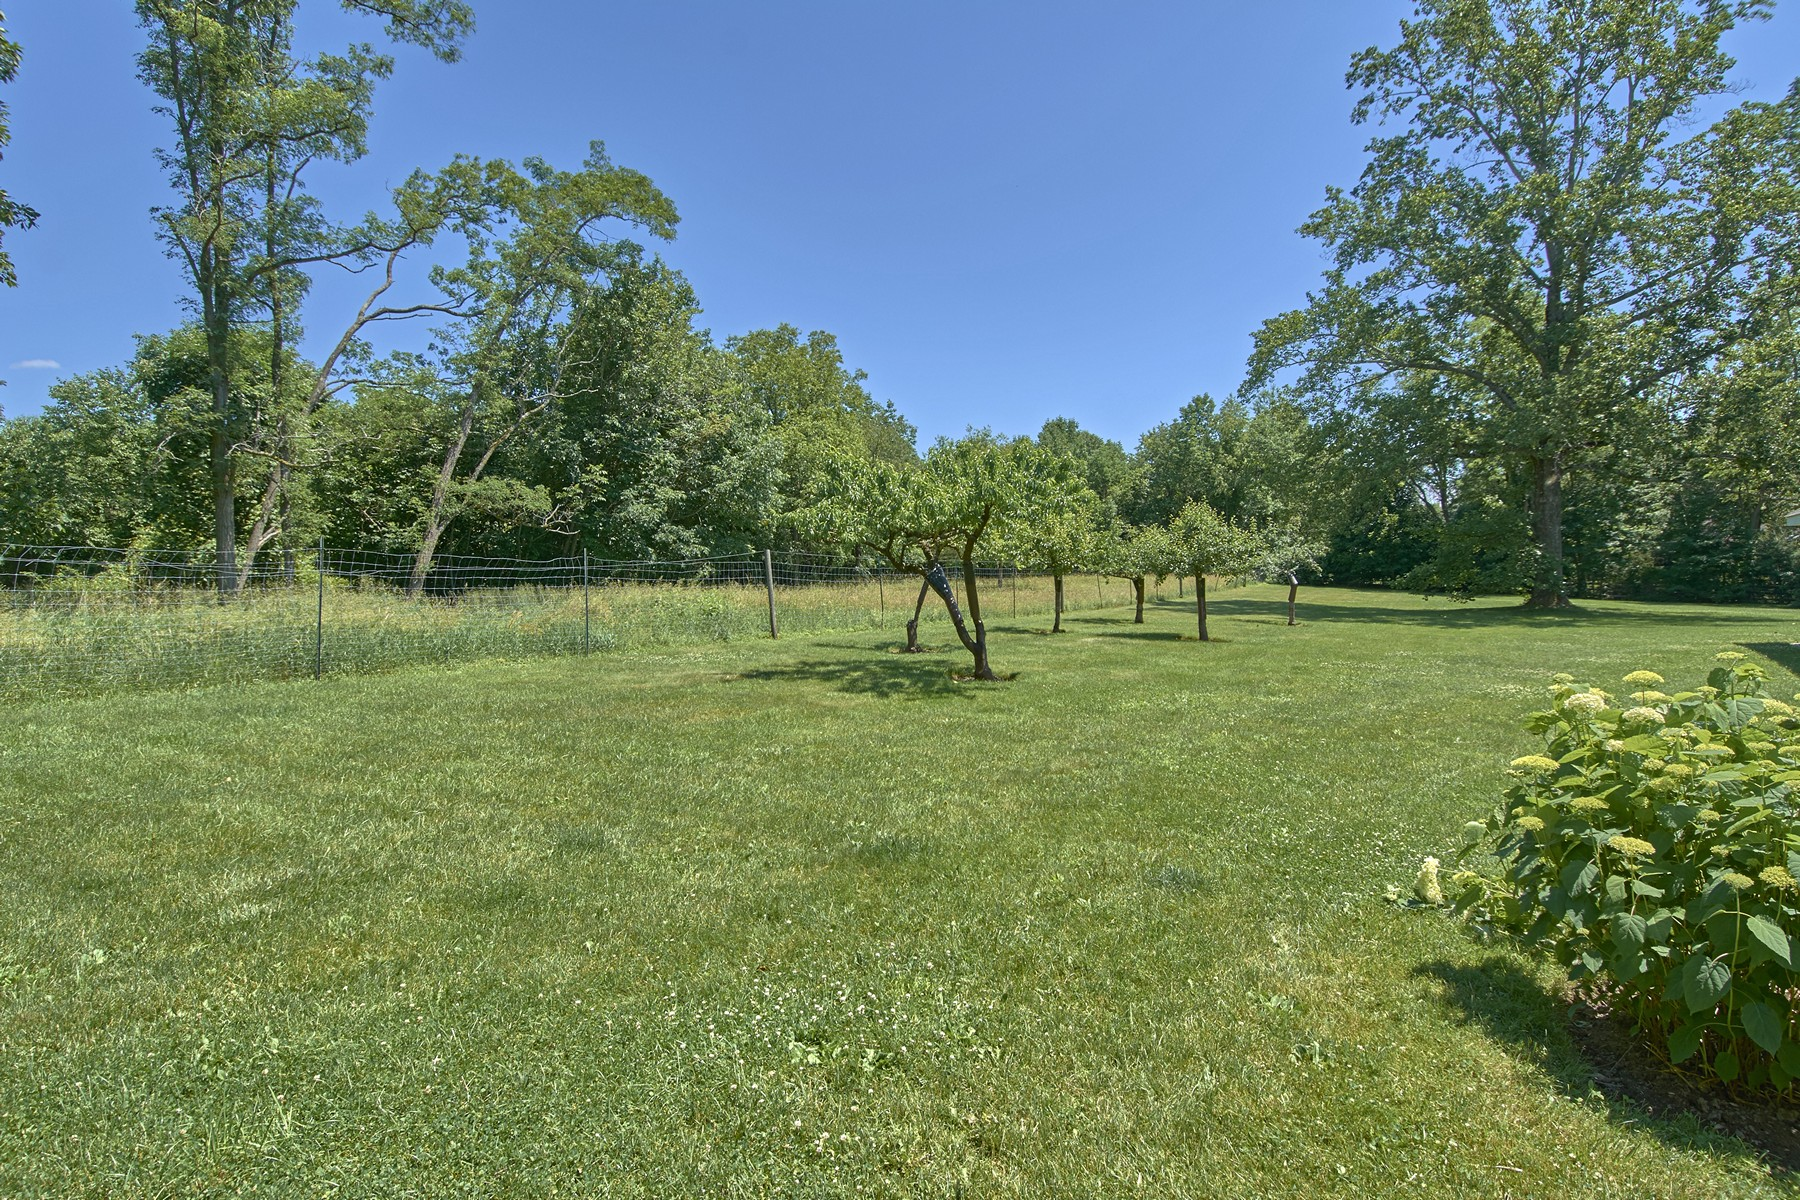 Additional photo for property listing at Sophisticated Country Living 25 Mead Street Waccabuc, New York 10597 United States